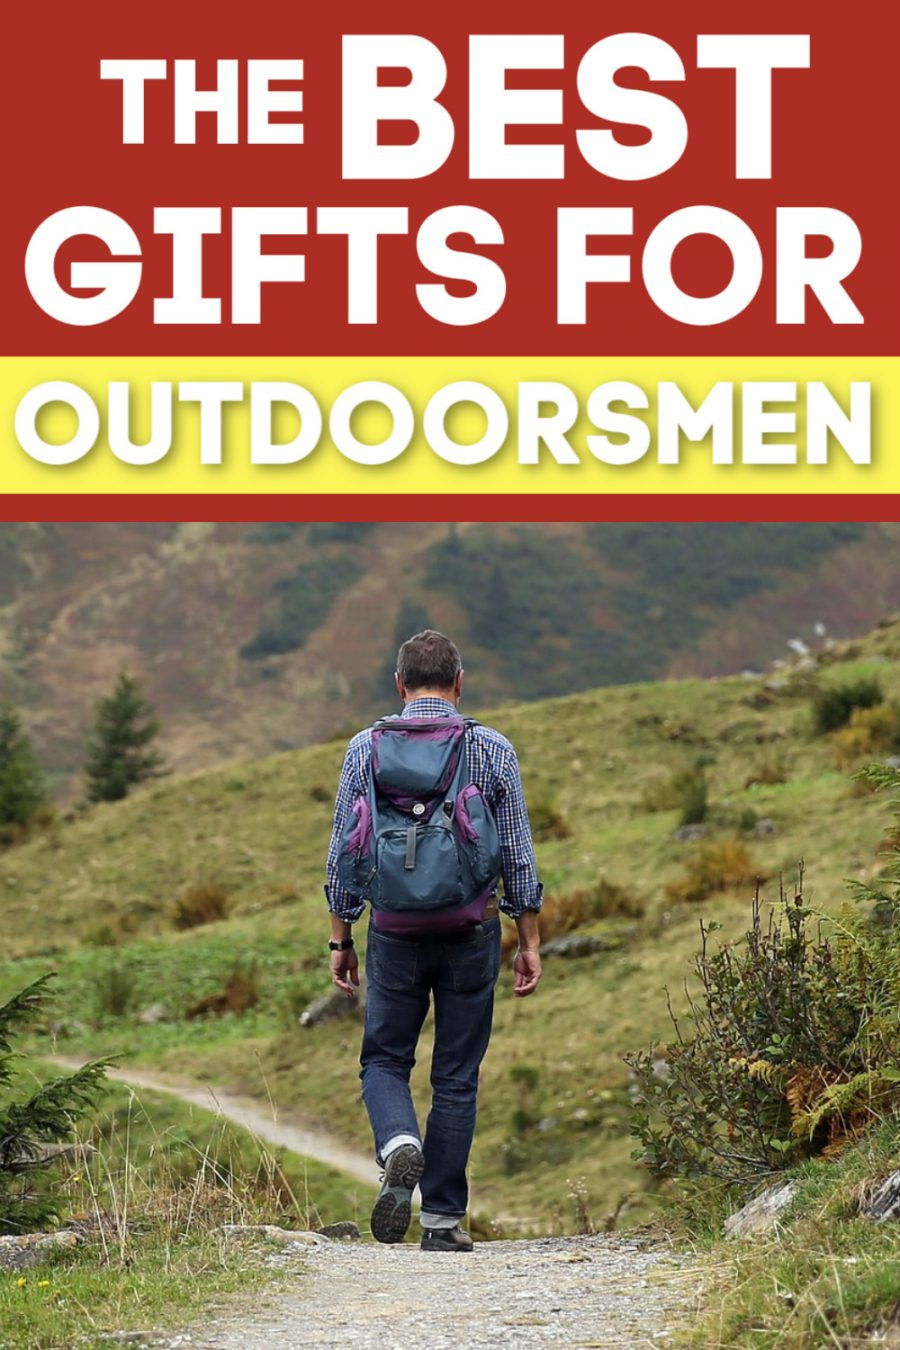 The BEST Gifts for Outdoorsmen